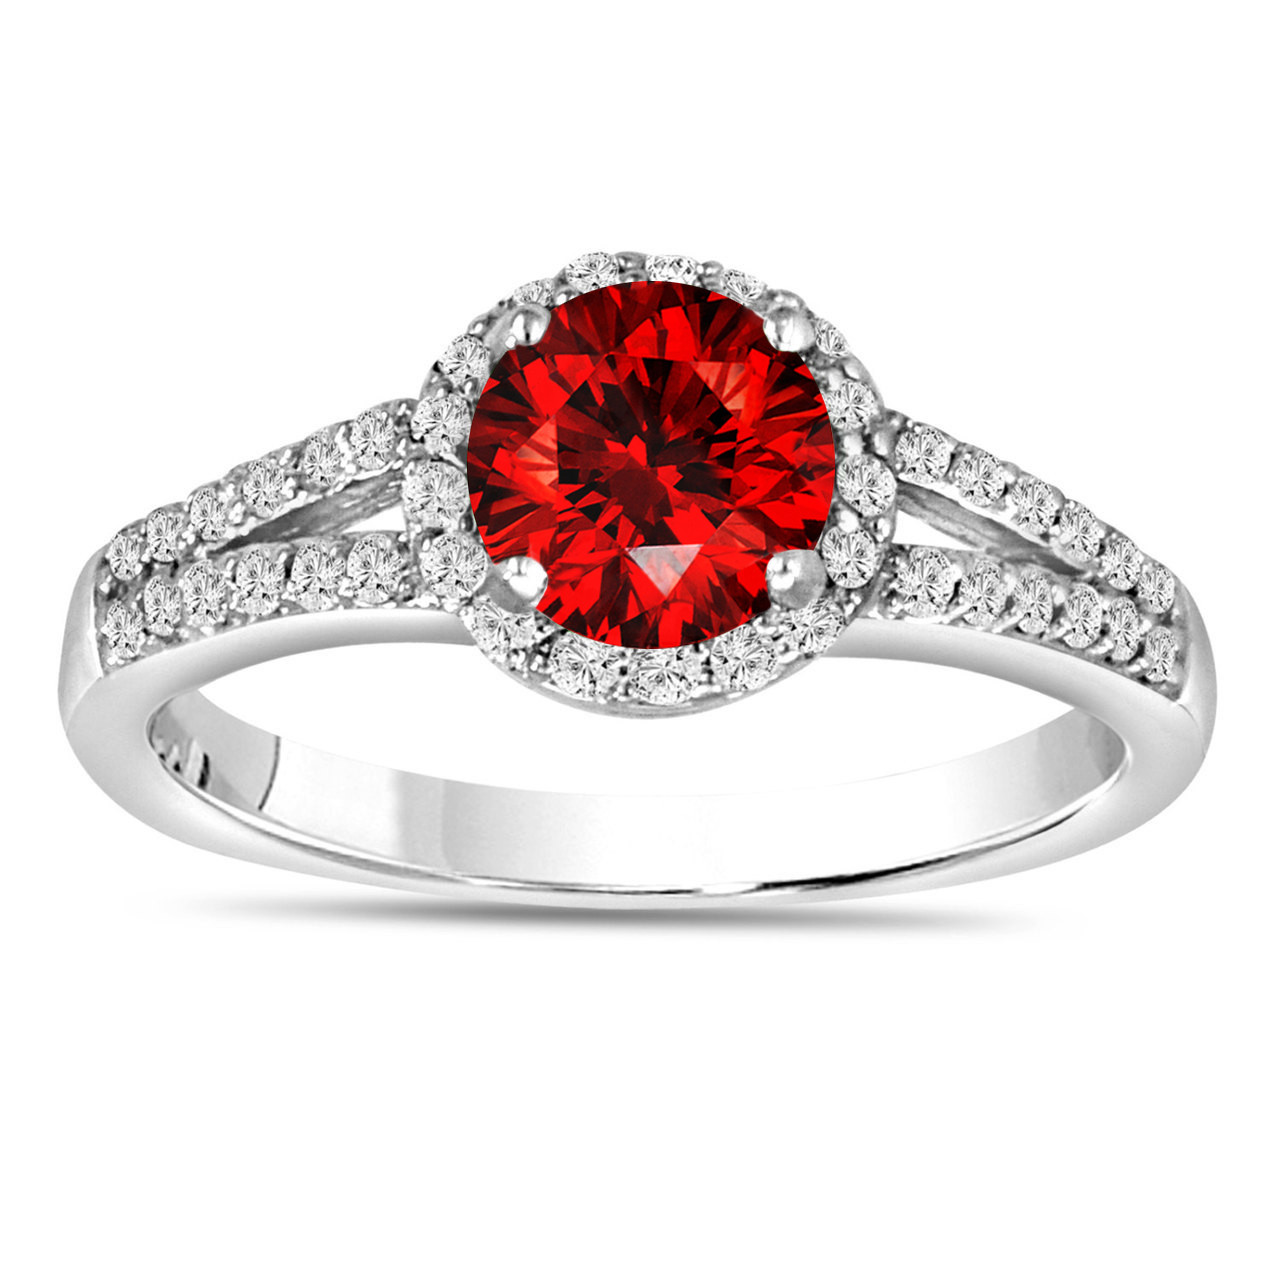 1.00 Carat Fancy Red Diamond Engagement Ring 14K White